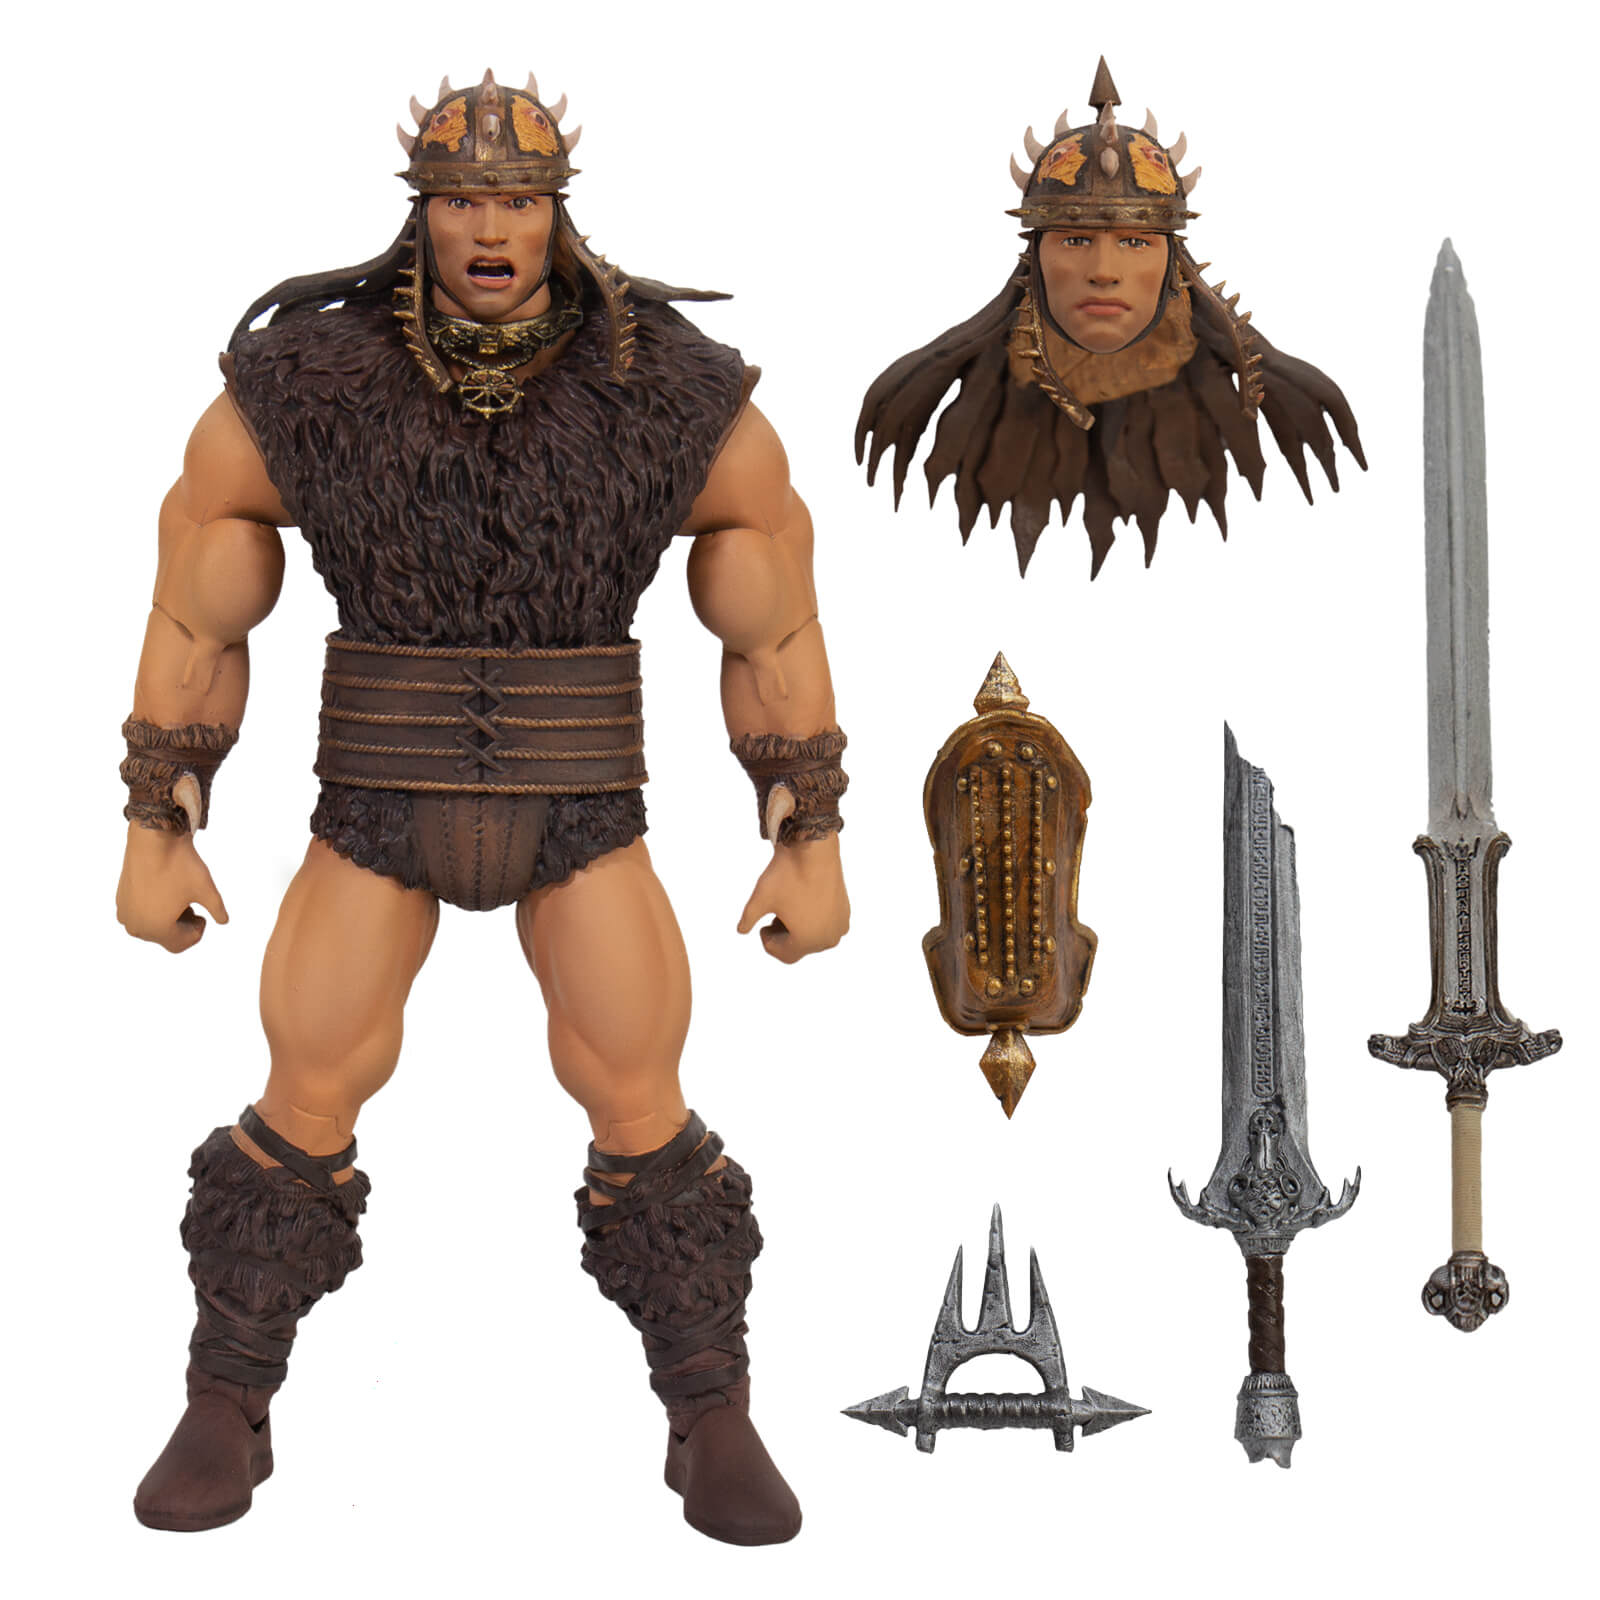 Conan The Barbarian - Ultimate: PIT FIGHTER CONAN by Super 7